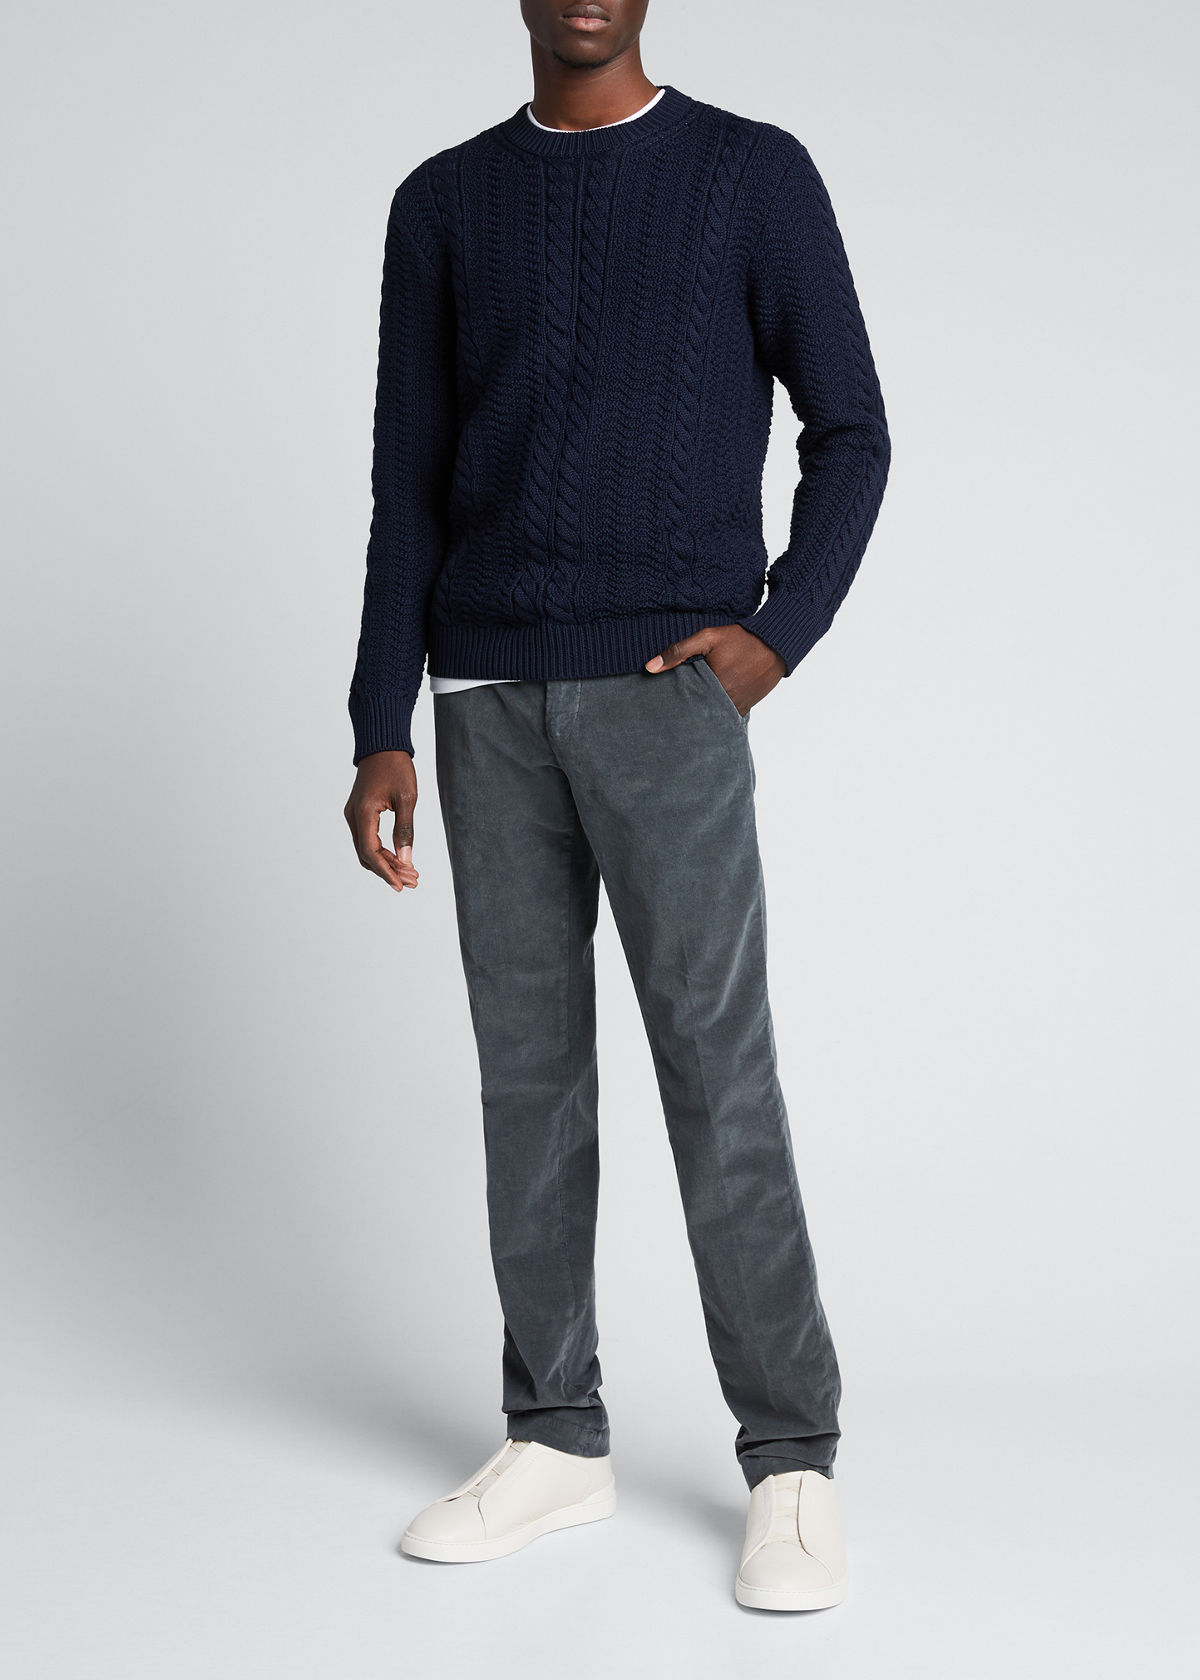 A.p.c. MEN'S CLAY CABLE-KNIT PULLOVER SWEATER